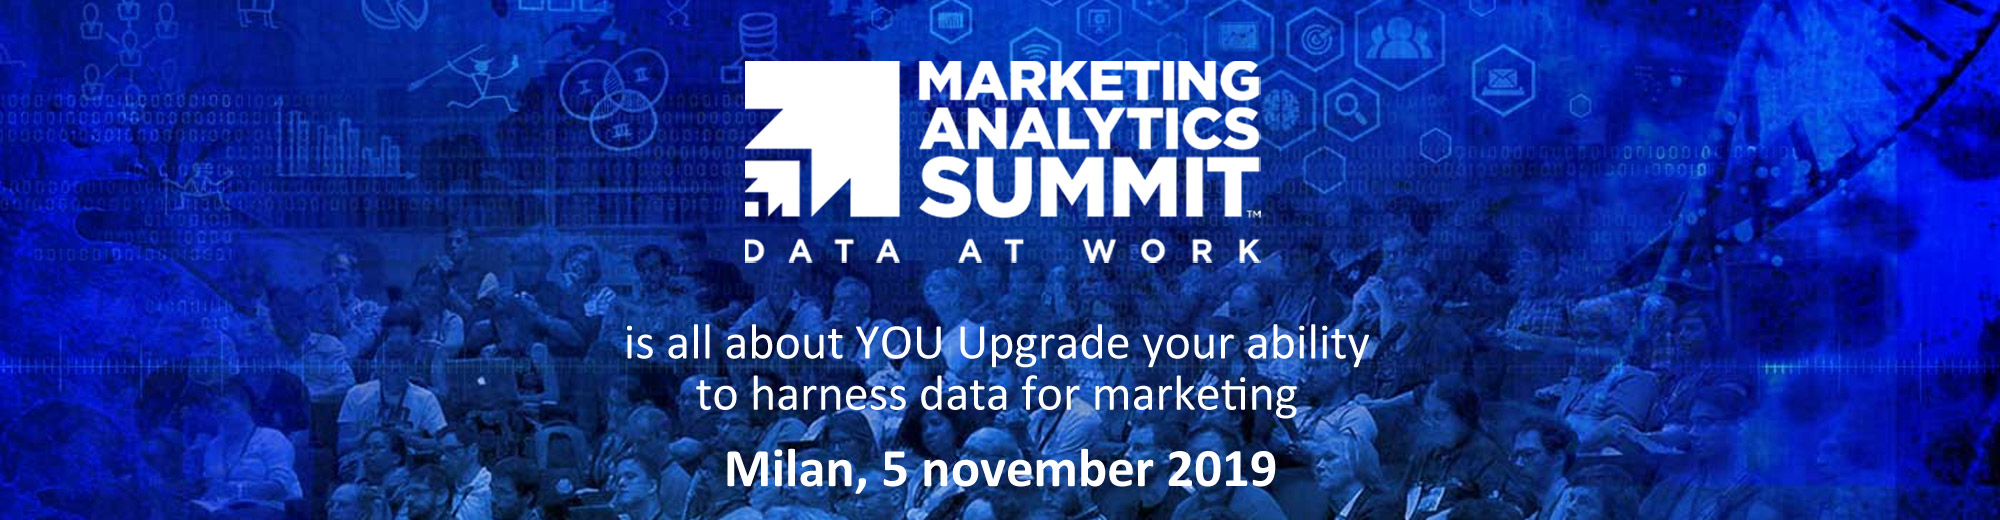 Marketing Analytics Summit 2019